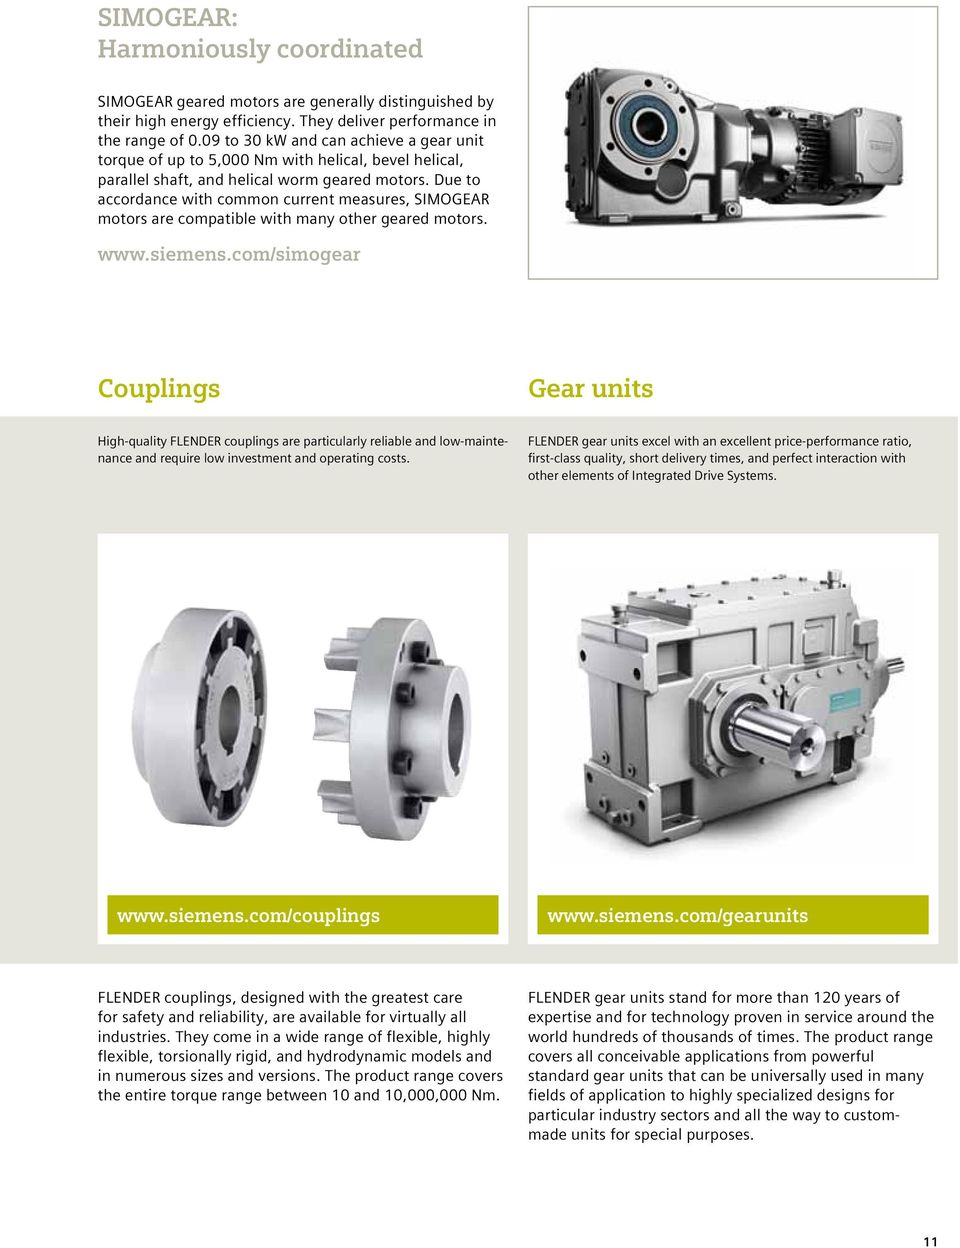 Due to accordance with common current measures, SIMOGEAR motors are compatible with many other geared motors. www.siemens.